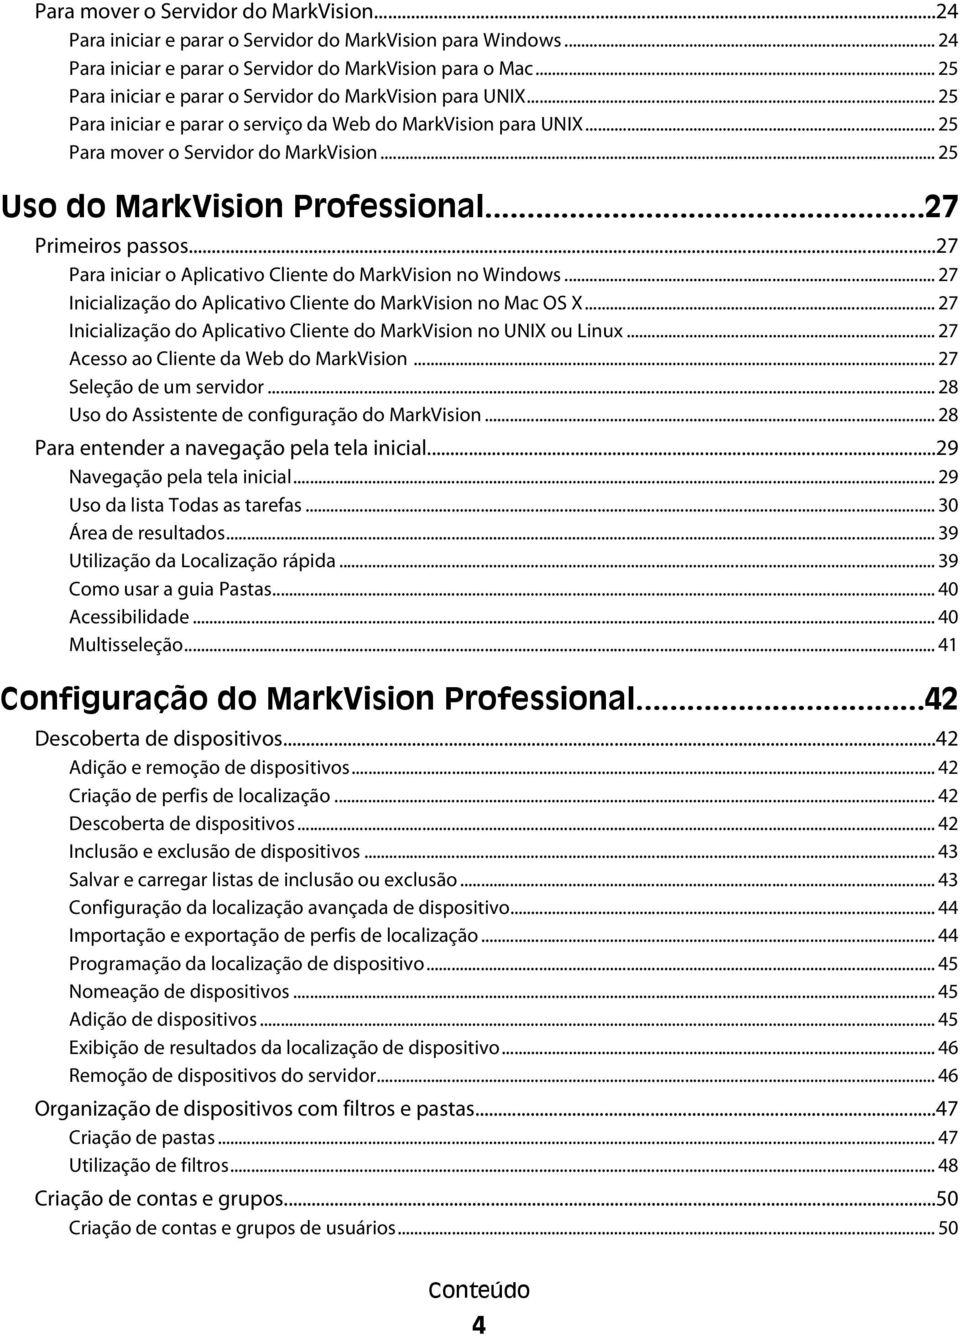 .. 25 Uso do MarkVision Professional...27 Primeiros passos...27 Para iniciar o Aplicativo Cliente do MarkVision no Windows... 27 Inicialização do Aplicativo Cliente do MarkVision no Mac OS X.